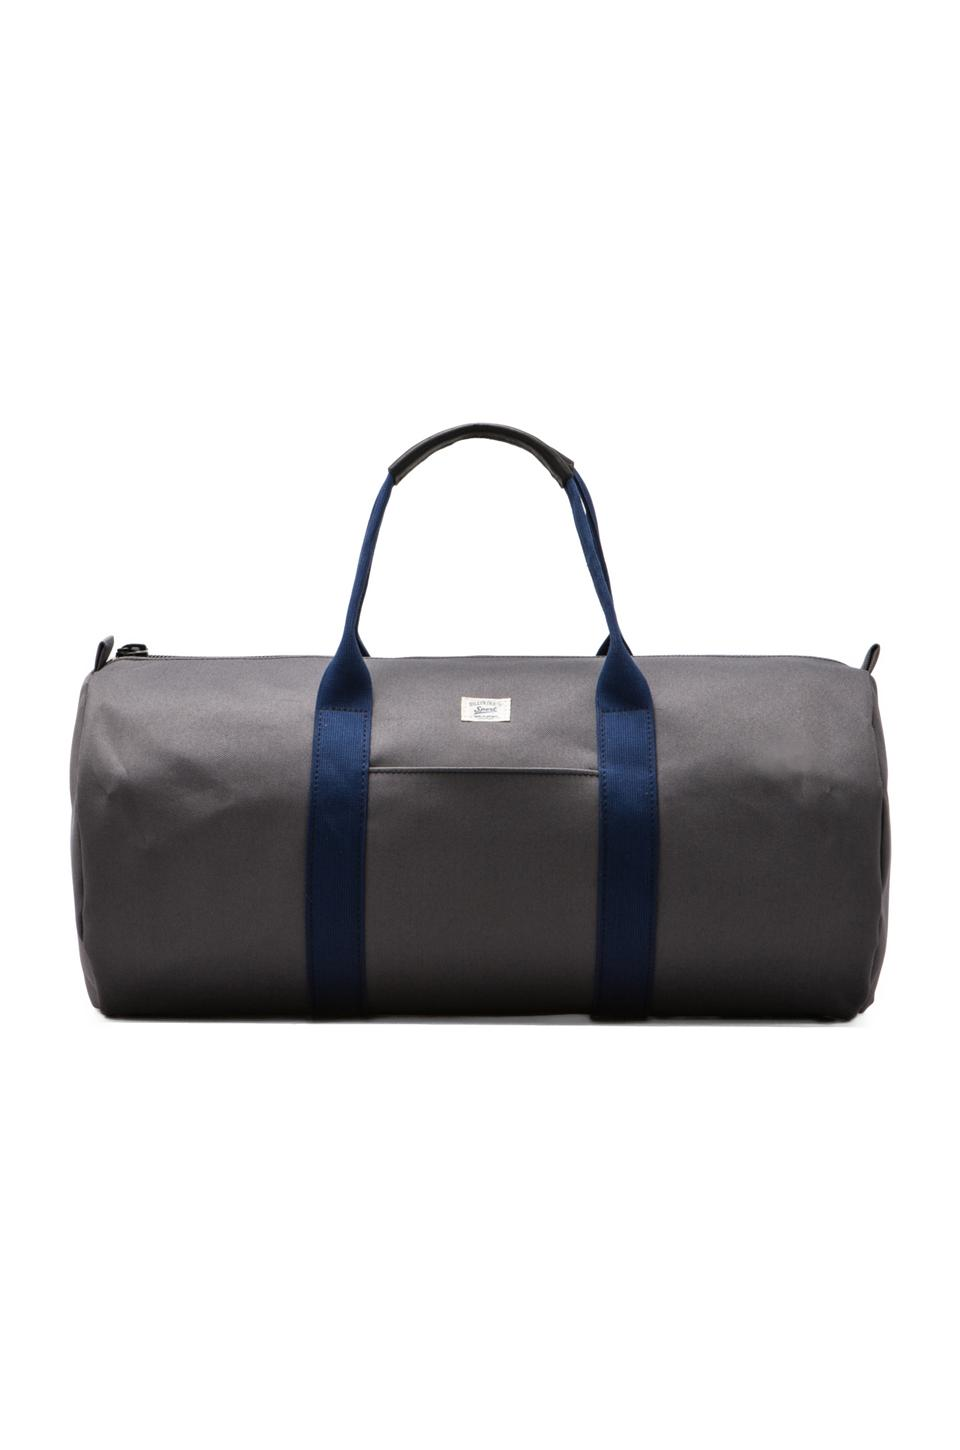 Billykirk Duffle Bag in Grey/ Navy Sport